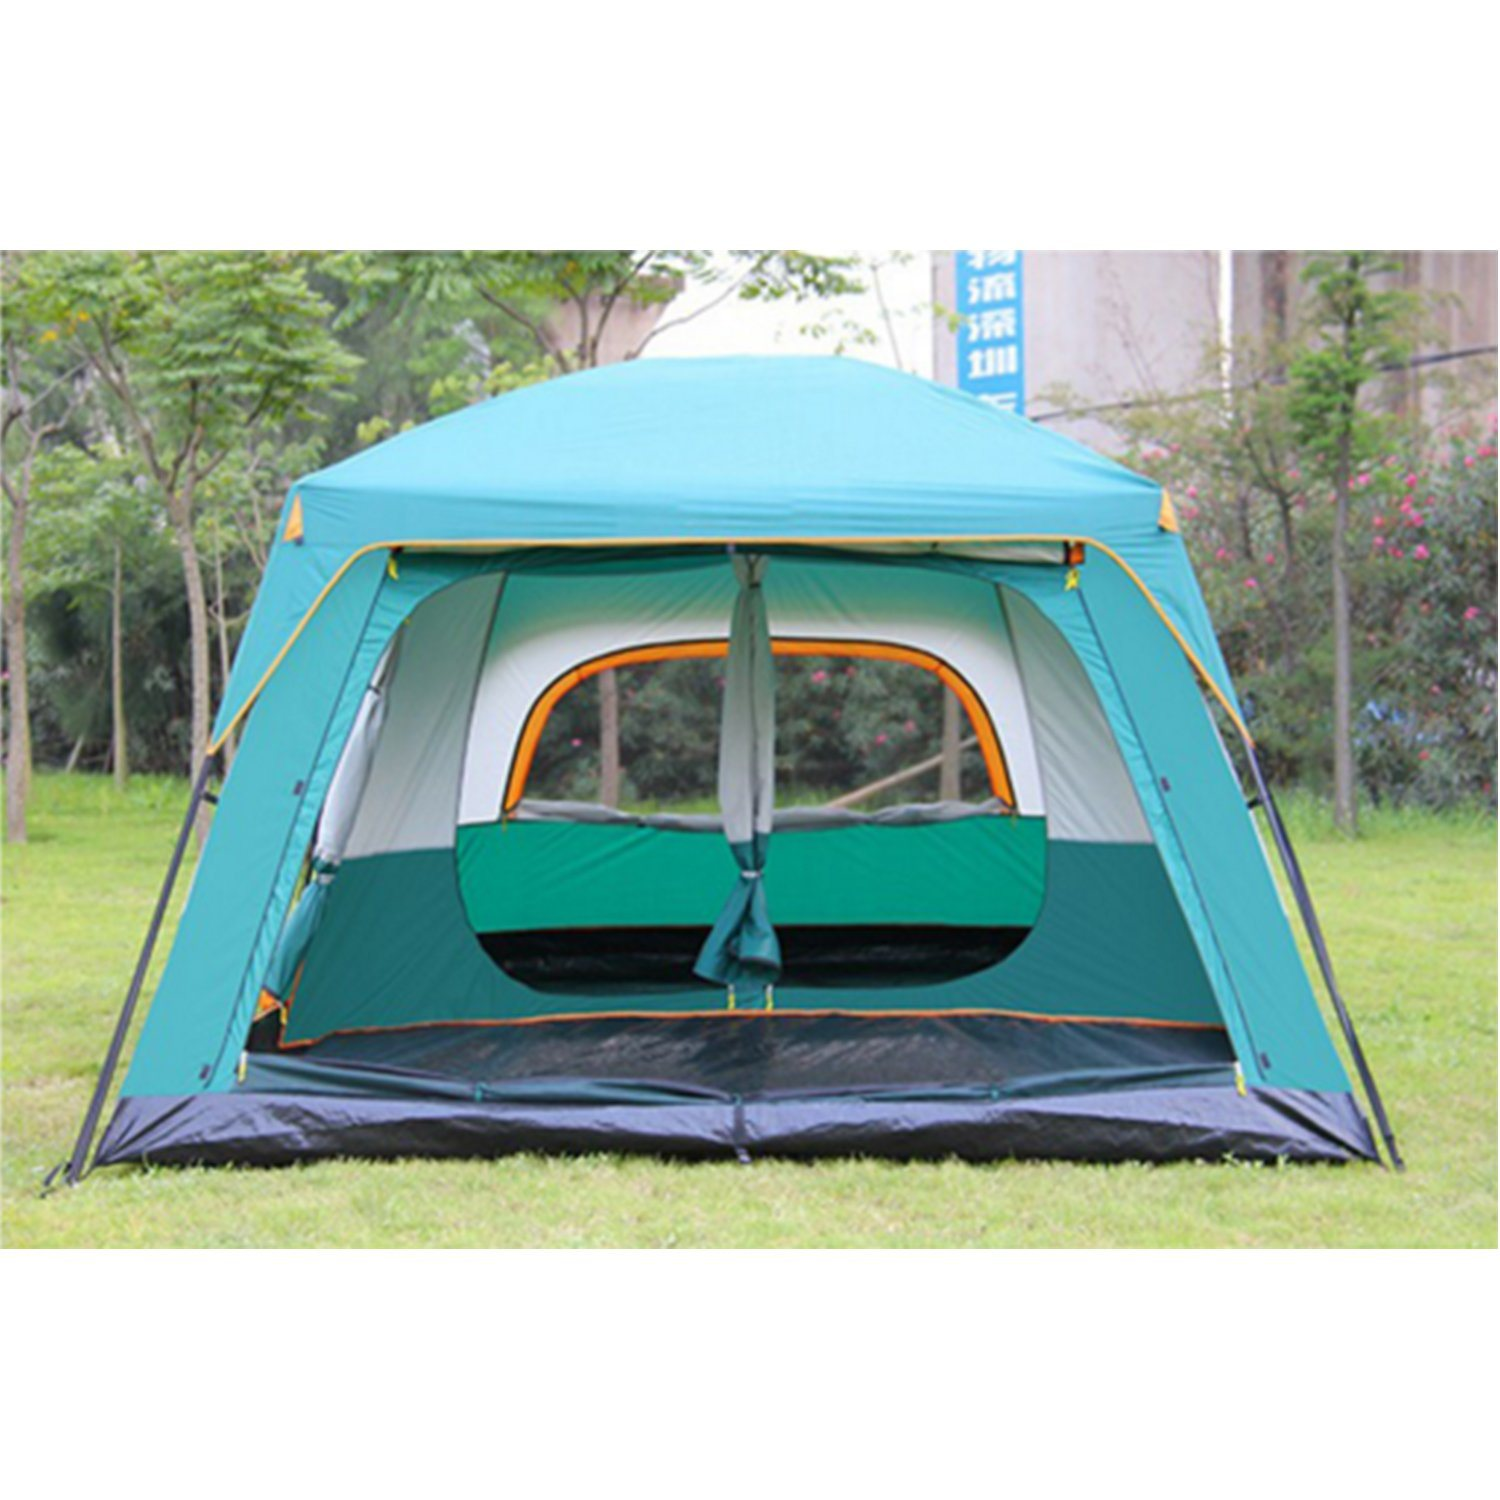 5-8 Person Outdoor Pop up Dome C&ing Tent with Waterproof  sc 1 st  Xiamen Yongstar Trading Co. Ltd. & China 5-8 Person Outdoor Pop up Dome Camping Tent with Waterproof ...